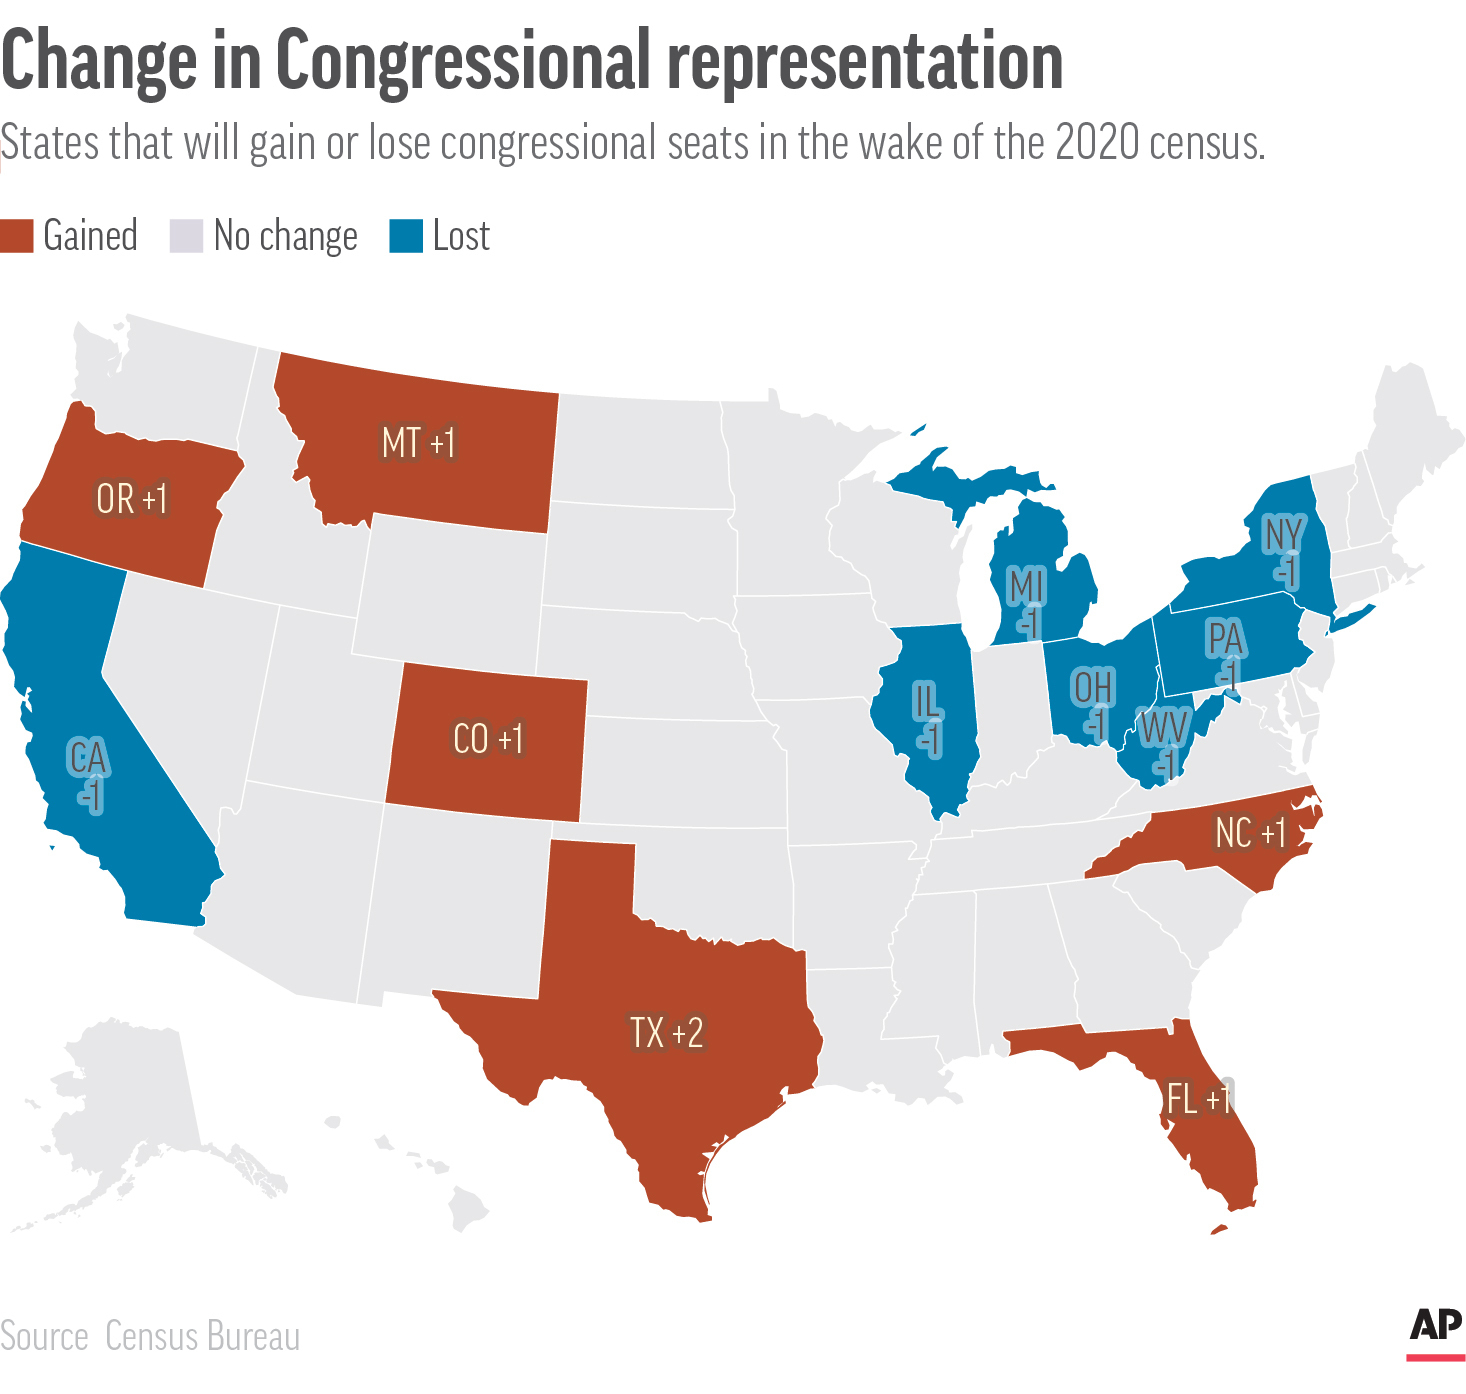 California and New York are among the states that will lose congressional seats in the wake of the 2020 census, while Texas and Florida will gain seats.